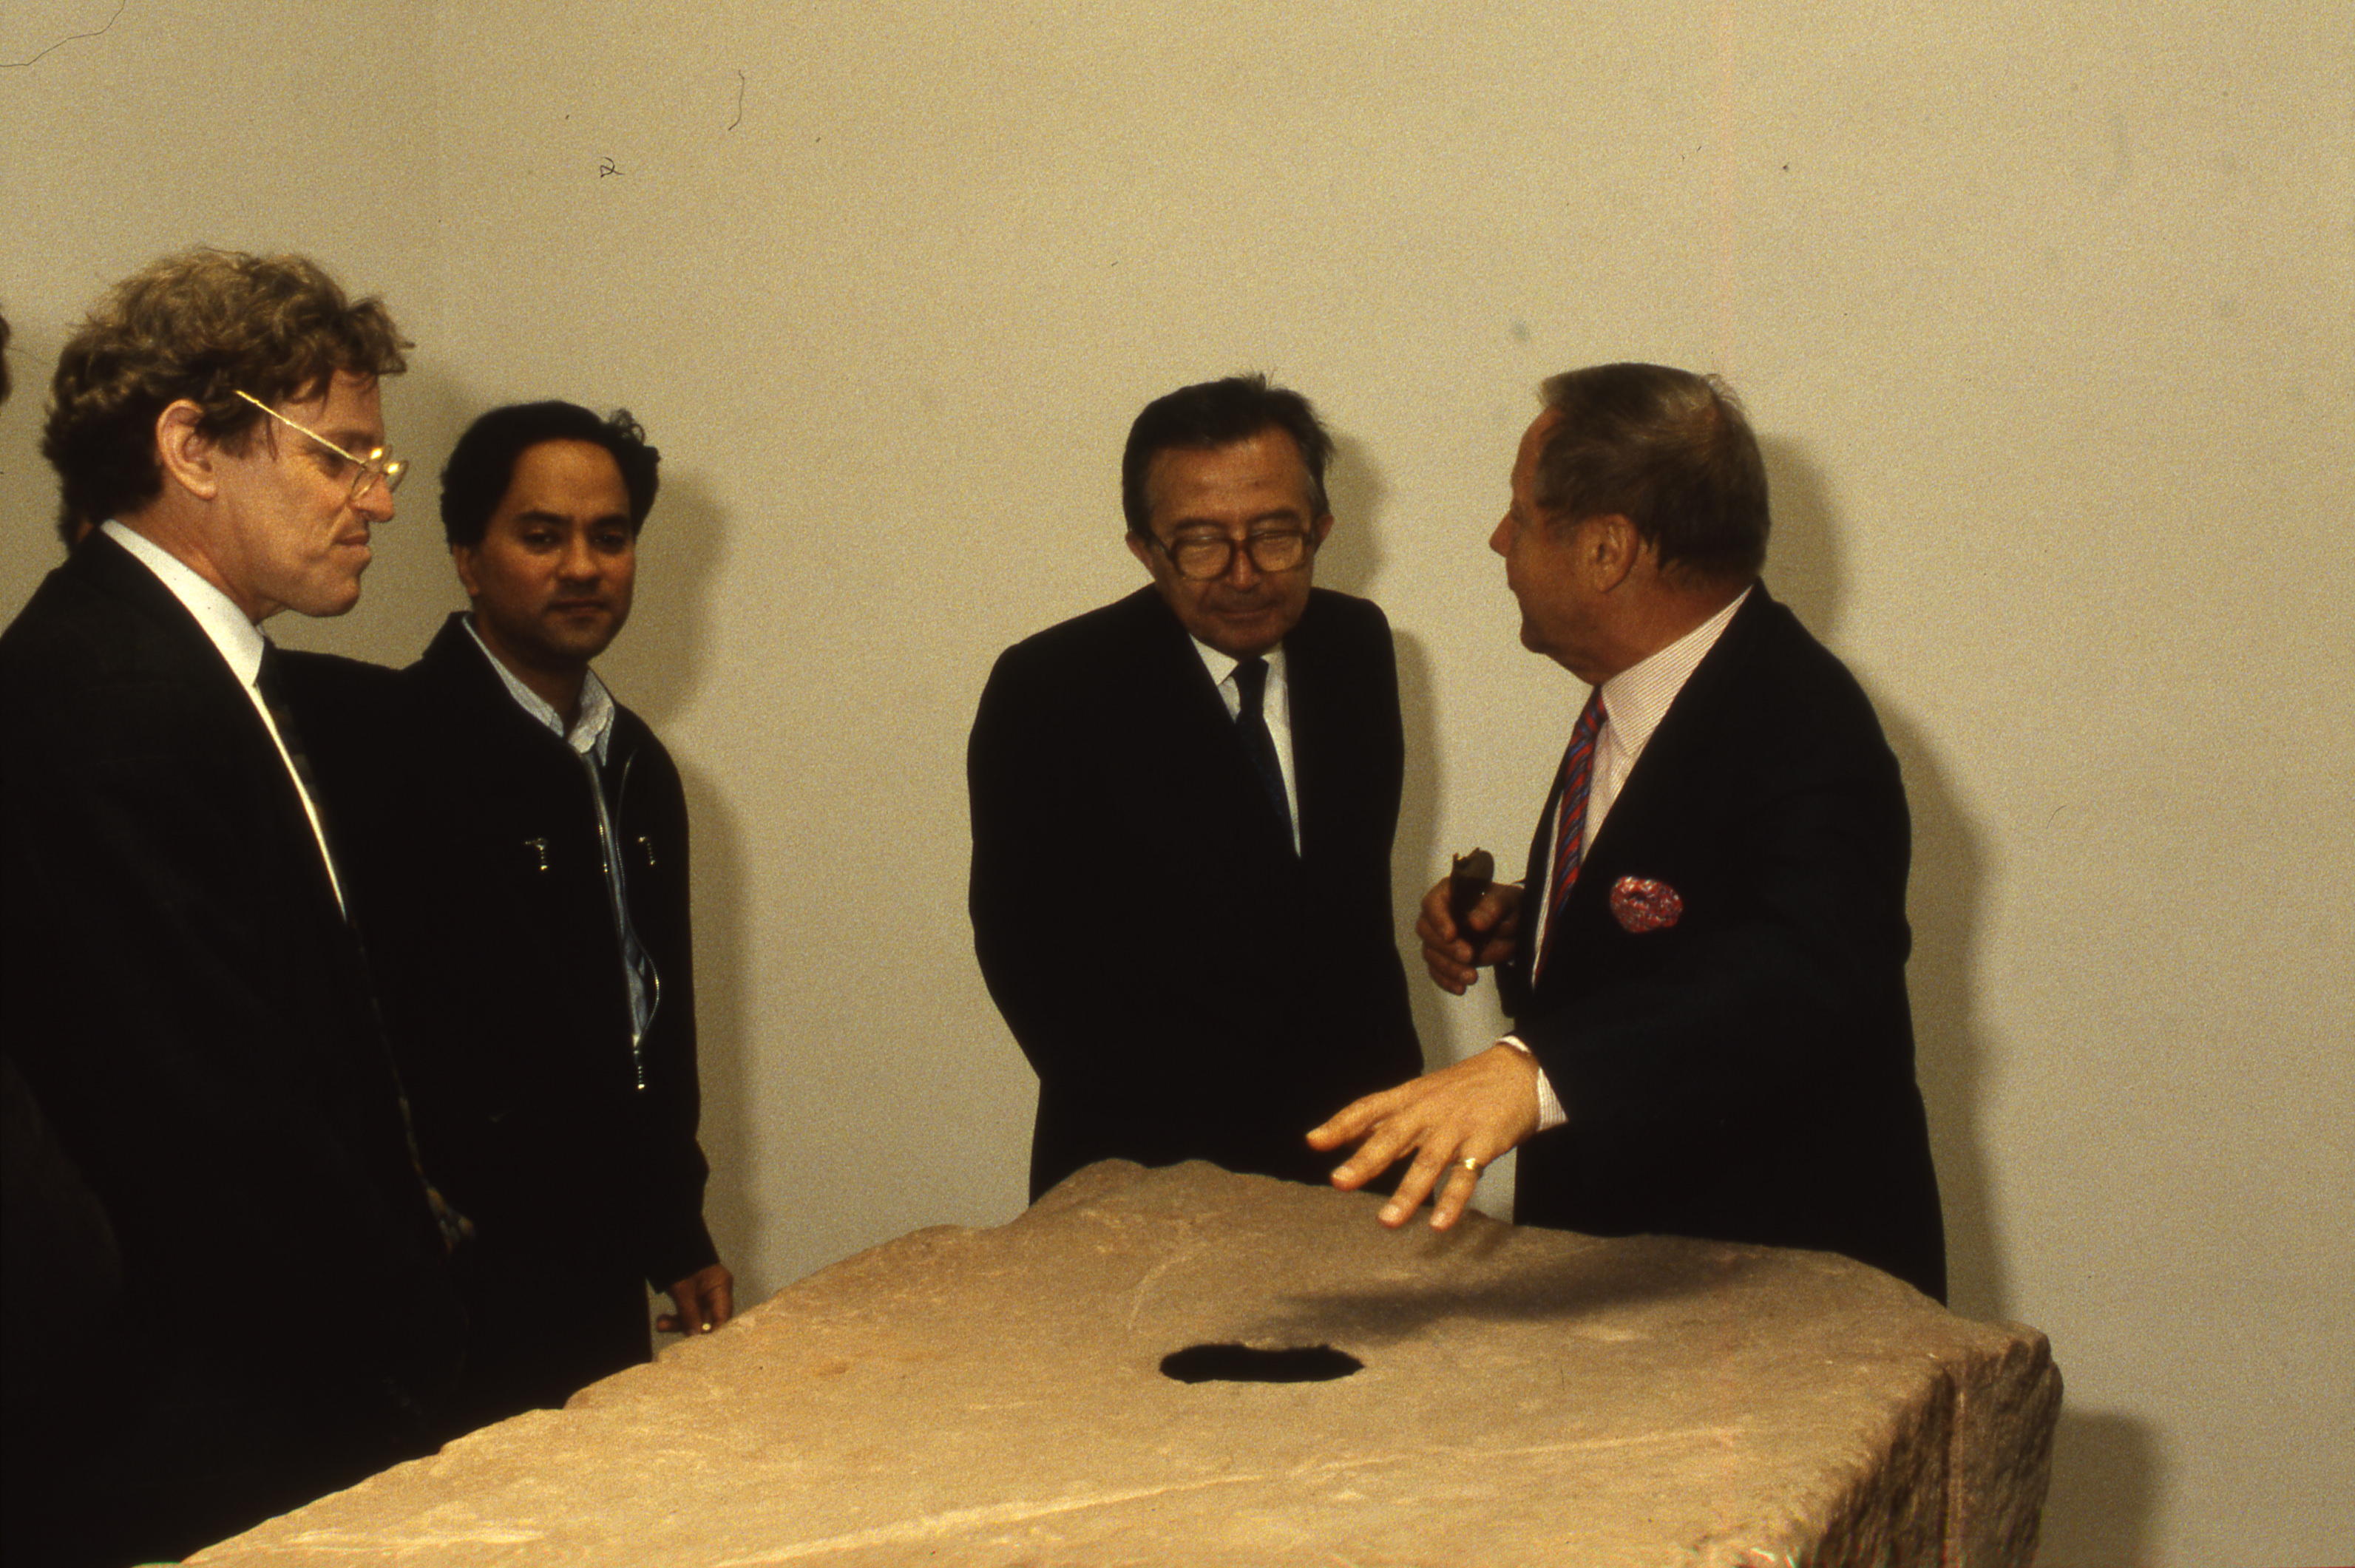 at the 1990 Venice Biennale. From left to right: Henry Meyric Hughes, Anish Kapoor, Giulio Andreotti, and Giovanni Carandente, Artistic Director of the Biennale